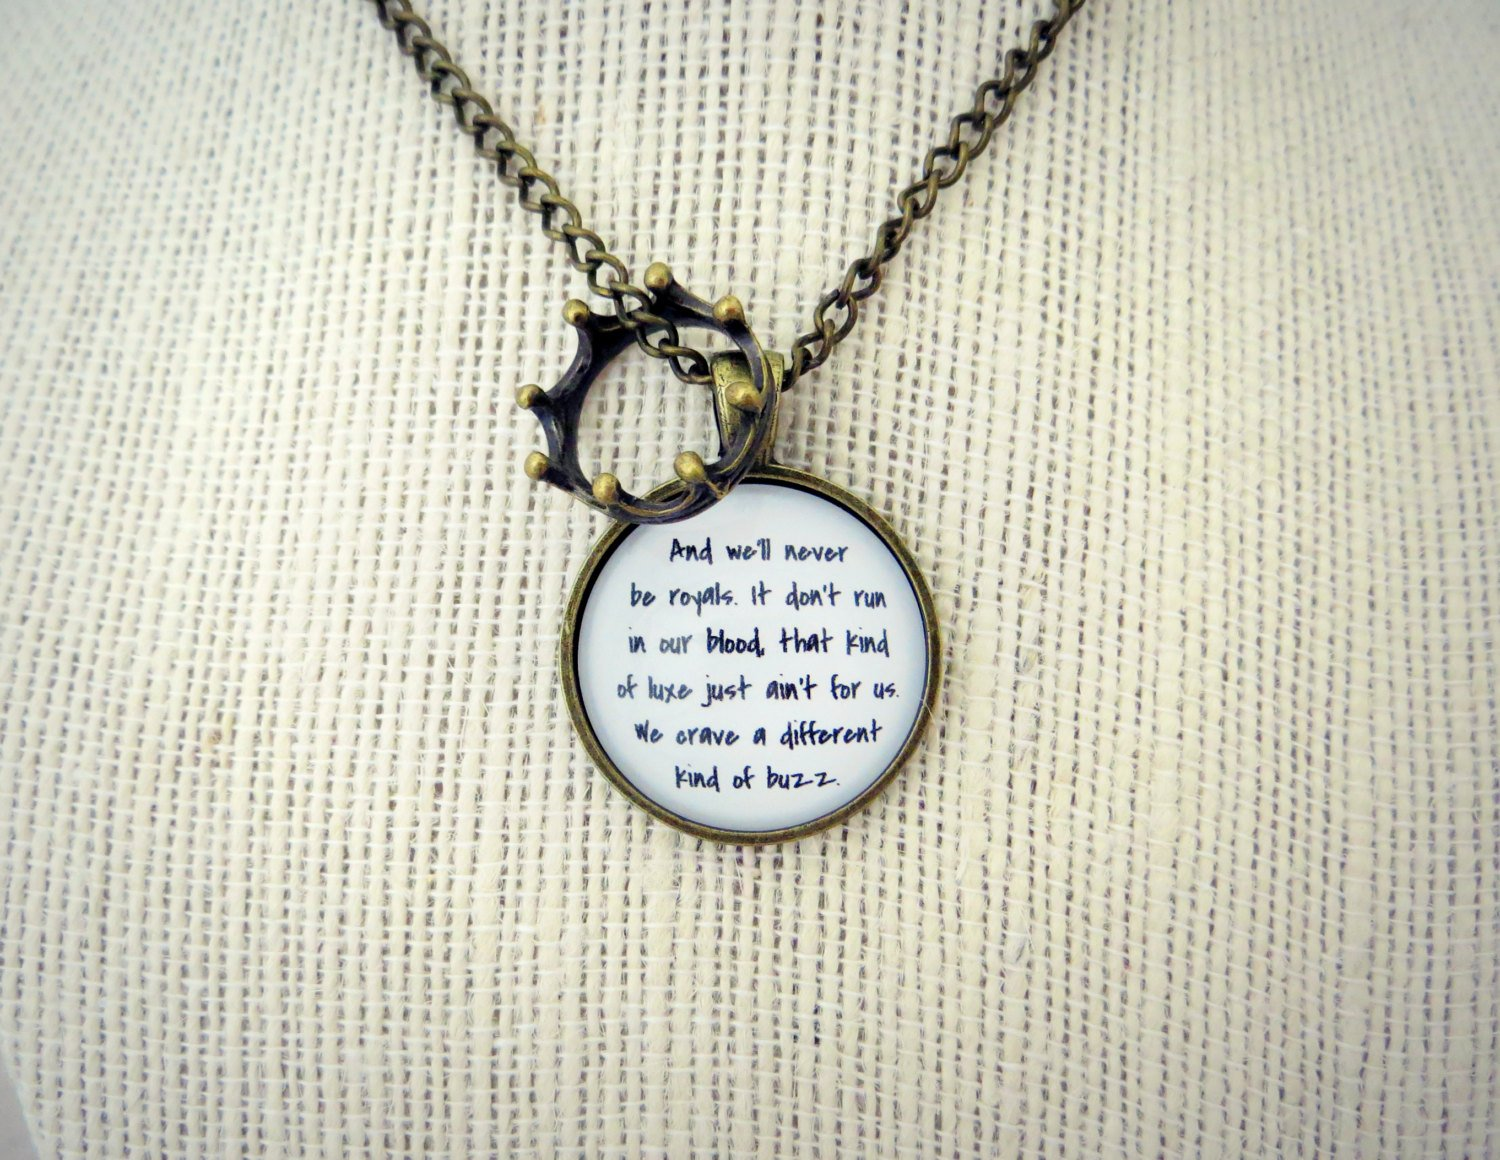 Lorde Royals Inspired Lyrical Quote Pendant Necklace with Crown Charm (Brass, 18 inches)